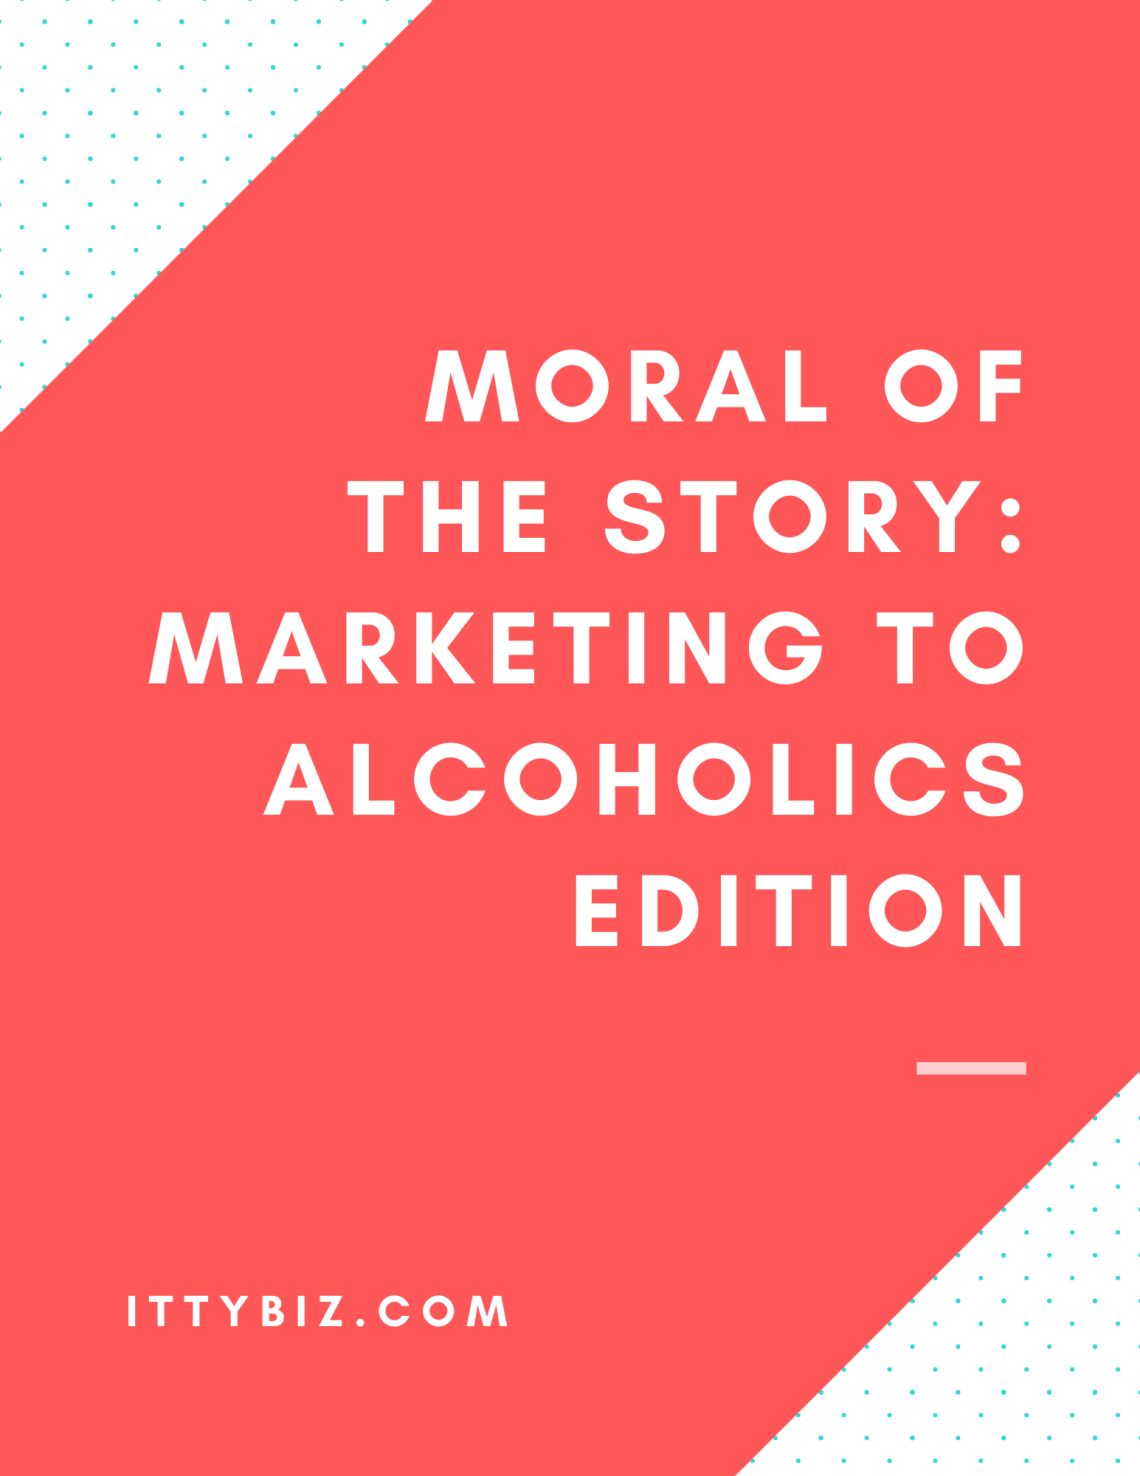 Moral of the Story: Marketing To Alcoholics Edition